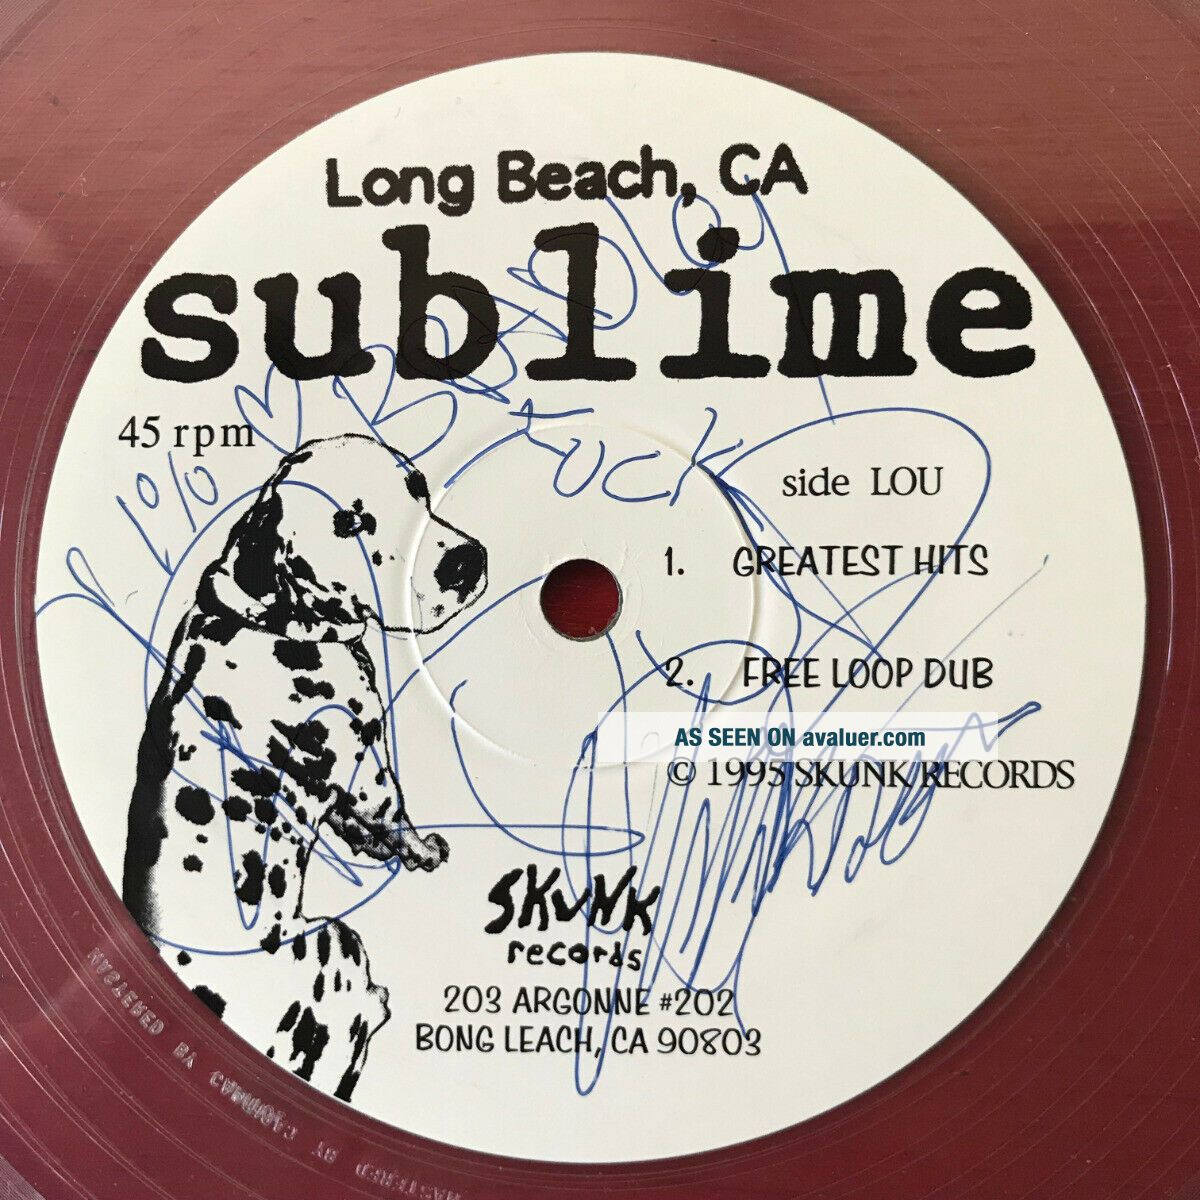 SUBLIME on Skunk —DATE RAPE— clear vinyl 12